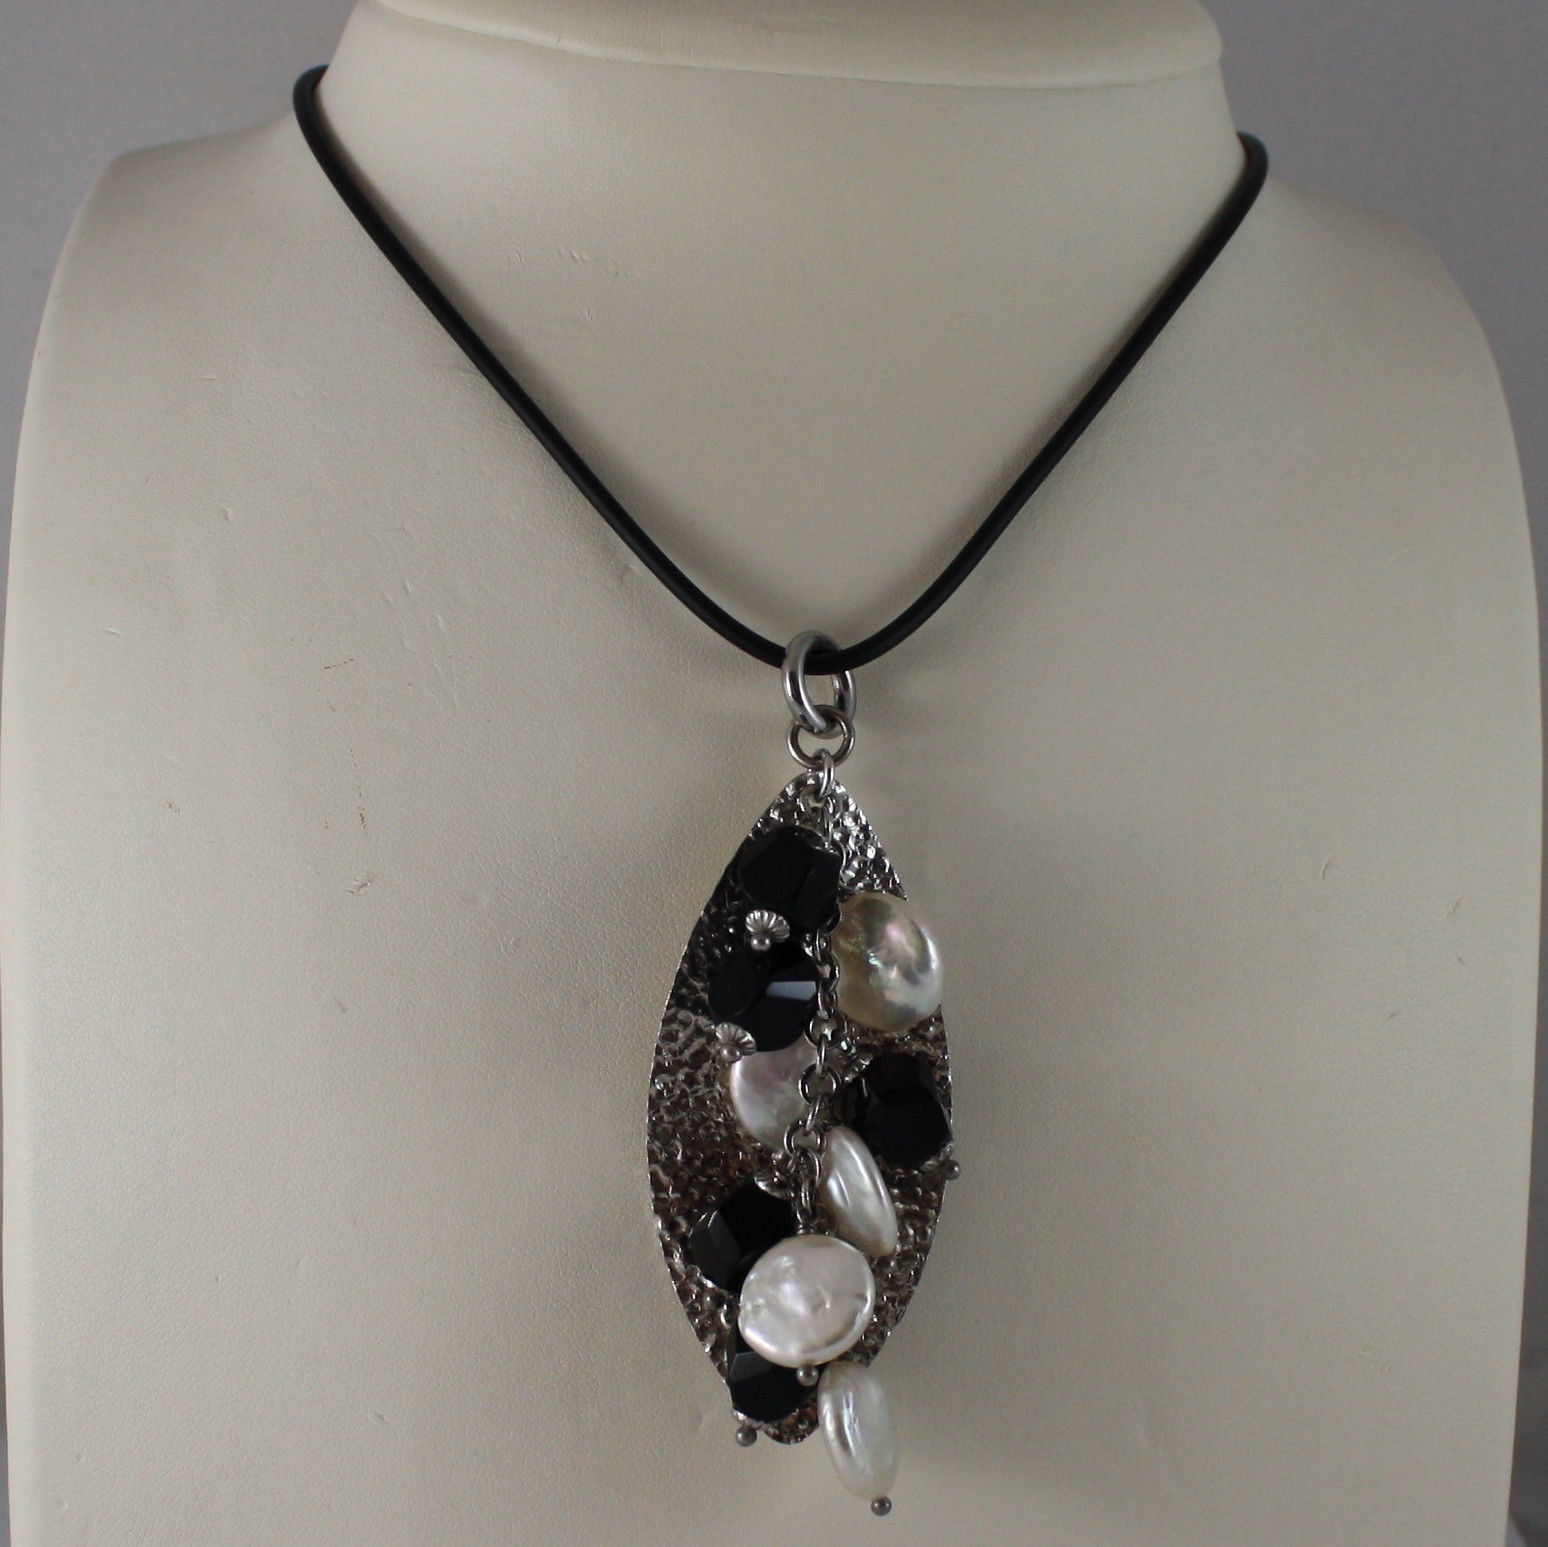 .925 SILVER RHODIUM NECKLACE WITH LEAF HAMMERED PENDANT WITH ONYX AND PEARLS